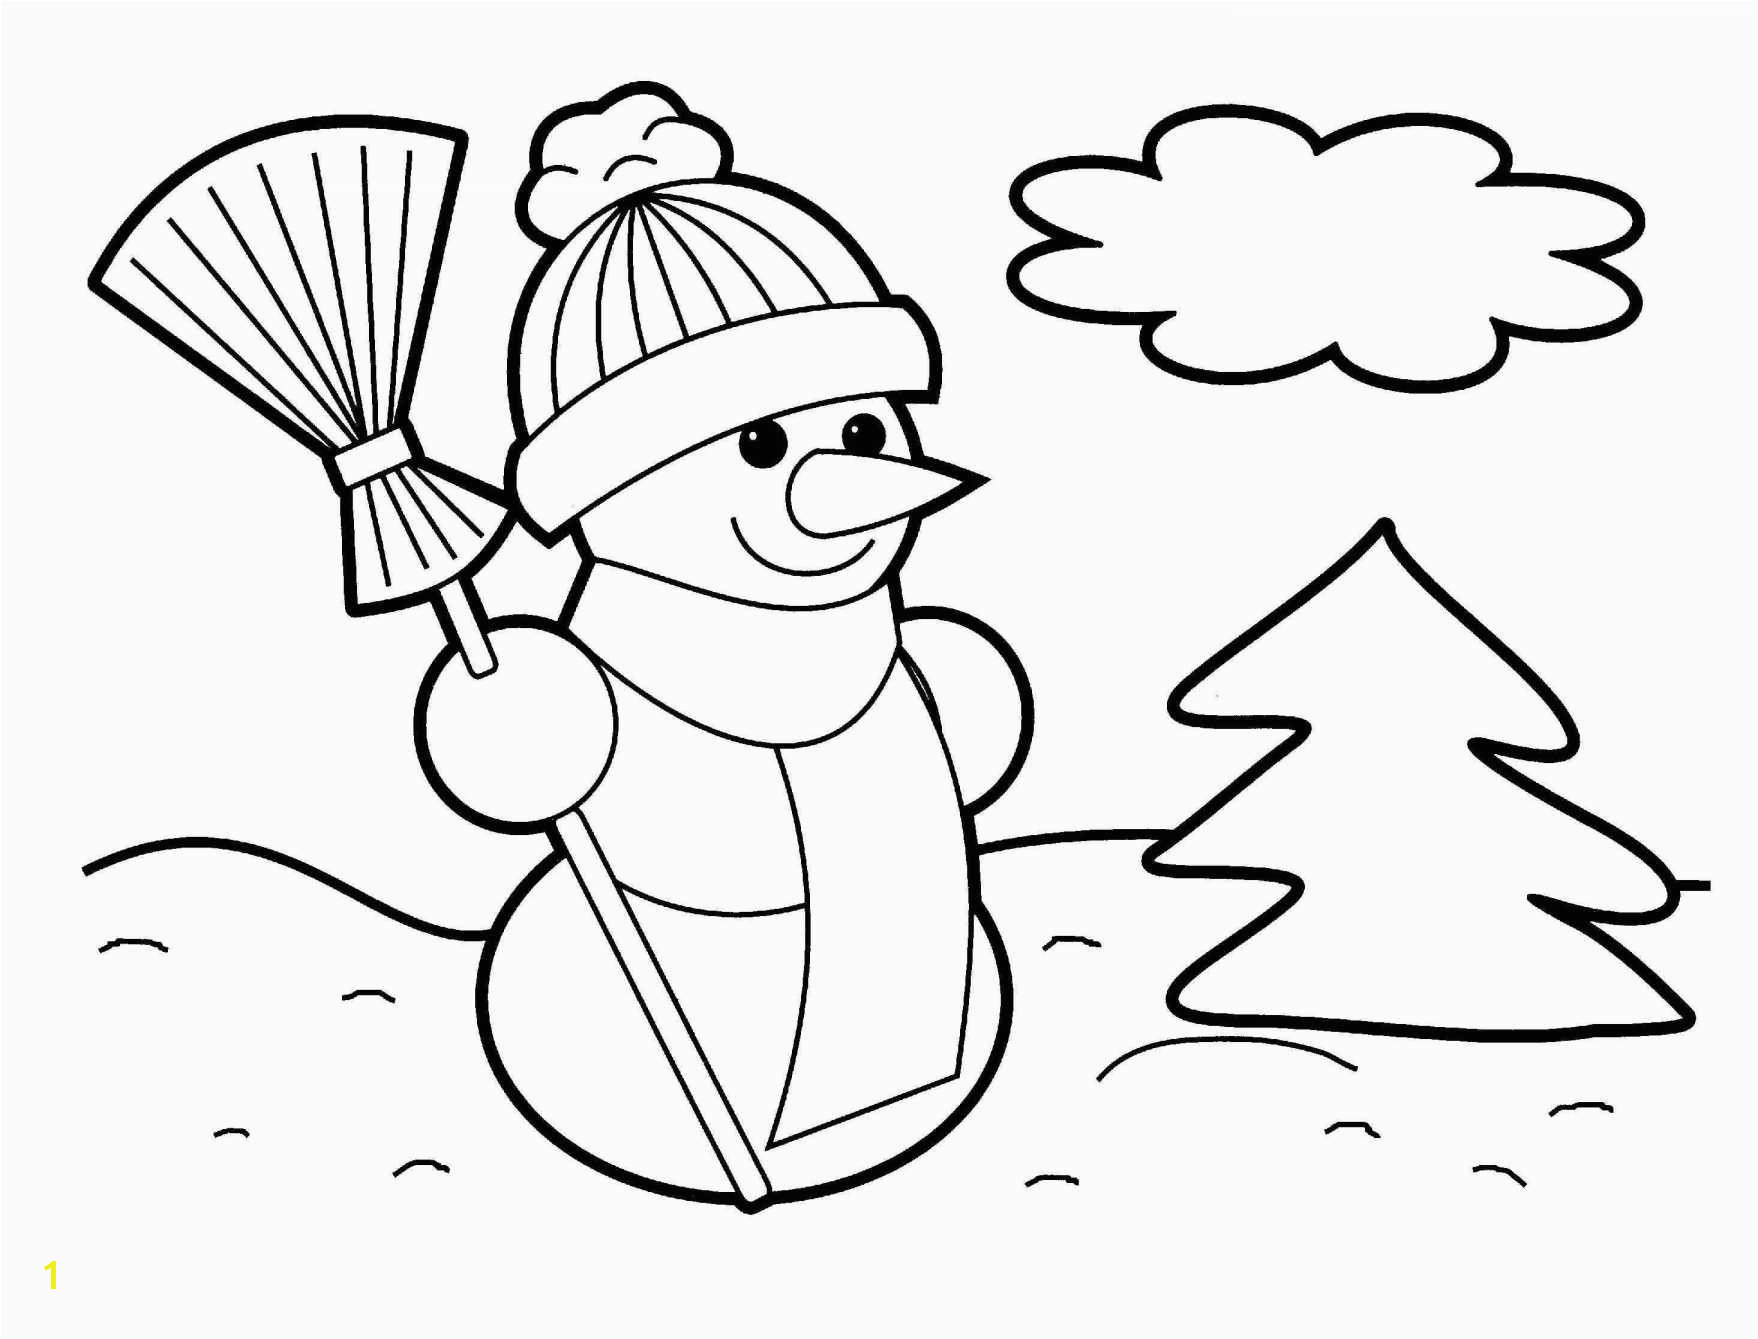 Difficult Christmas Coloring Pages For Adults Print Free Printable Advanced Christmas Coloring Pages Cool Od Dog